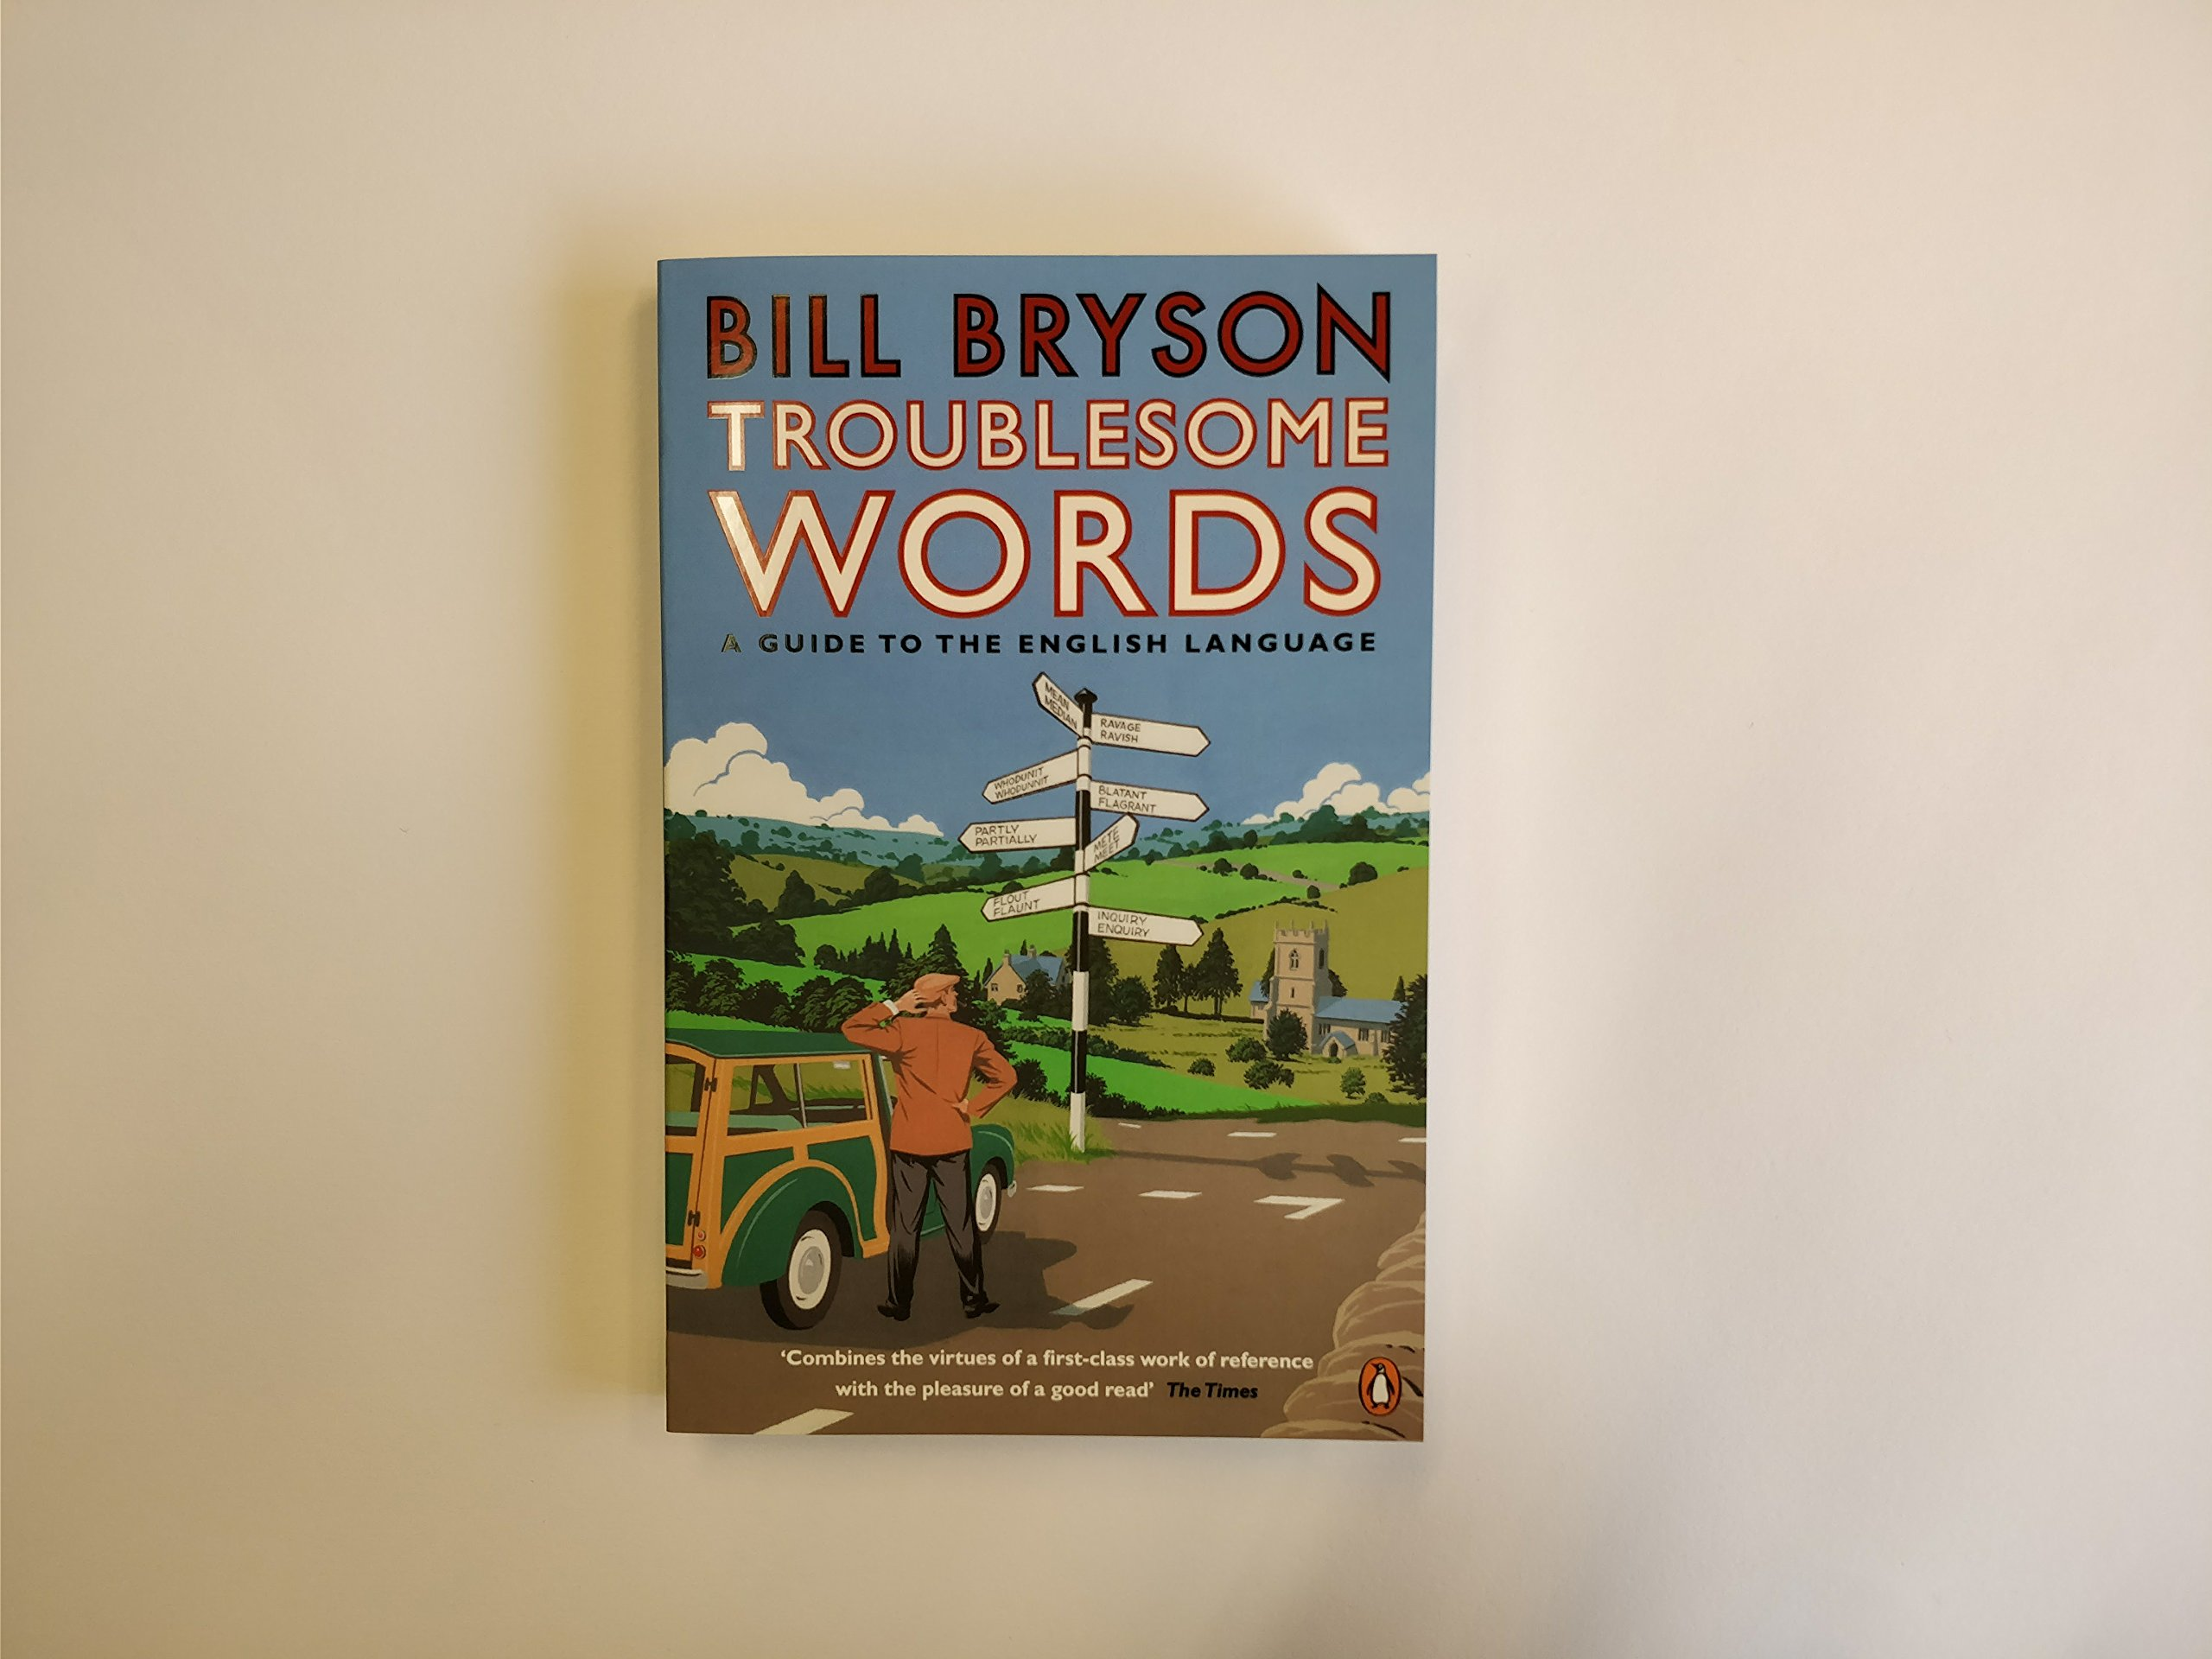 Troublesome words amazon bill bryson 9780141040394 books solutioingenieria Gallery